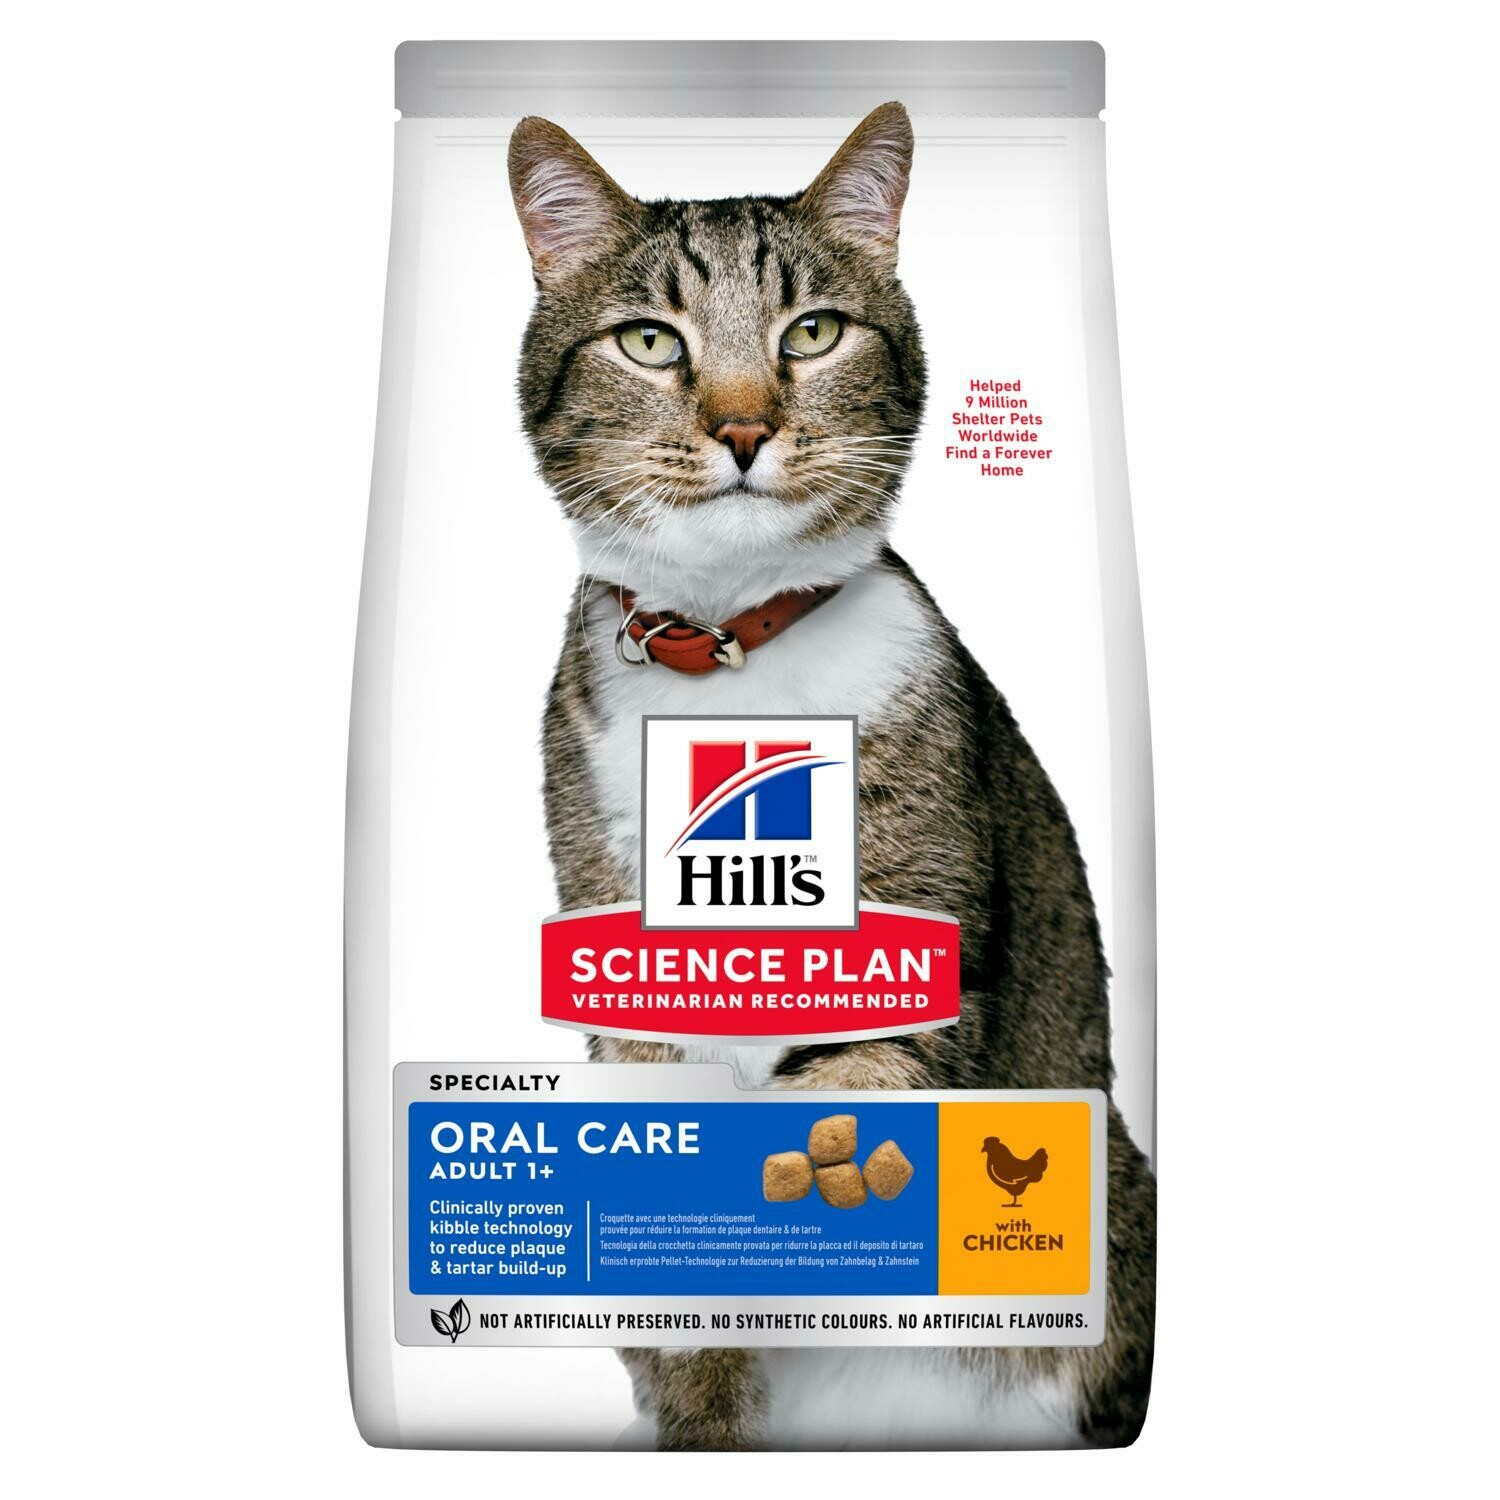 Hill's Science Plan Adult Oral Care Dry Food Chicken Flavour